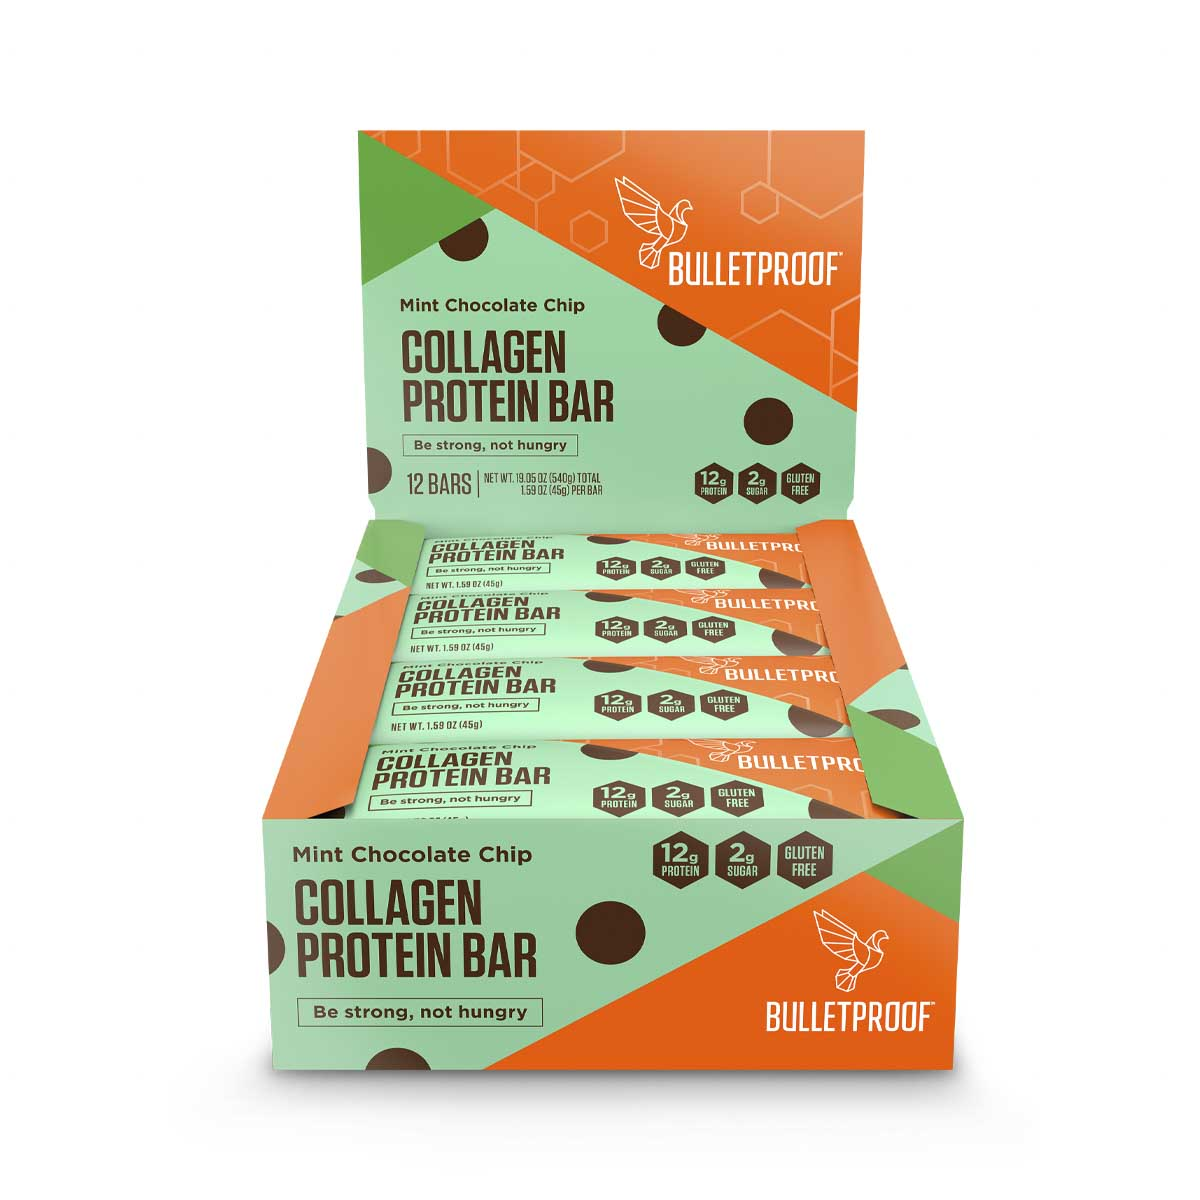 Bulletproof Mint Chocolate Chip Collagen Protein Bar (12 pack)